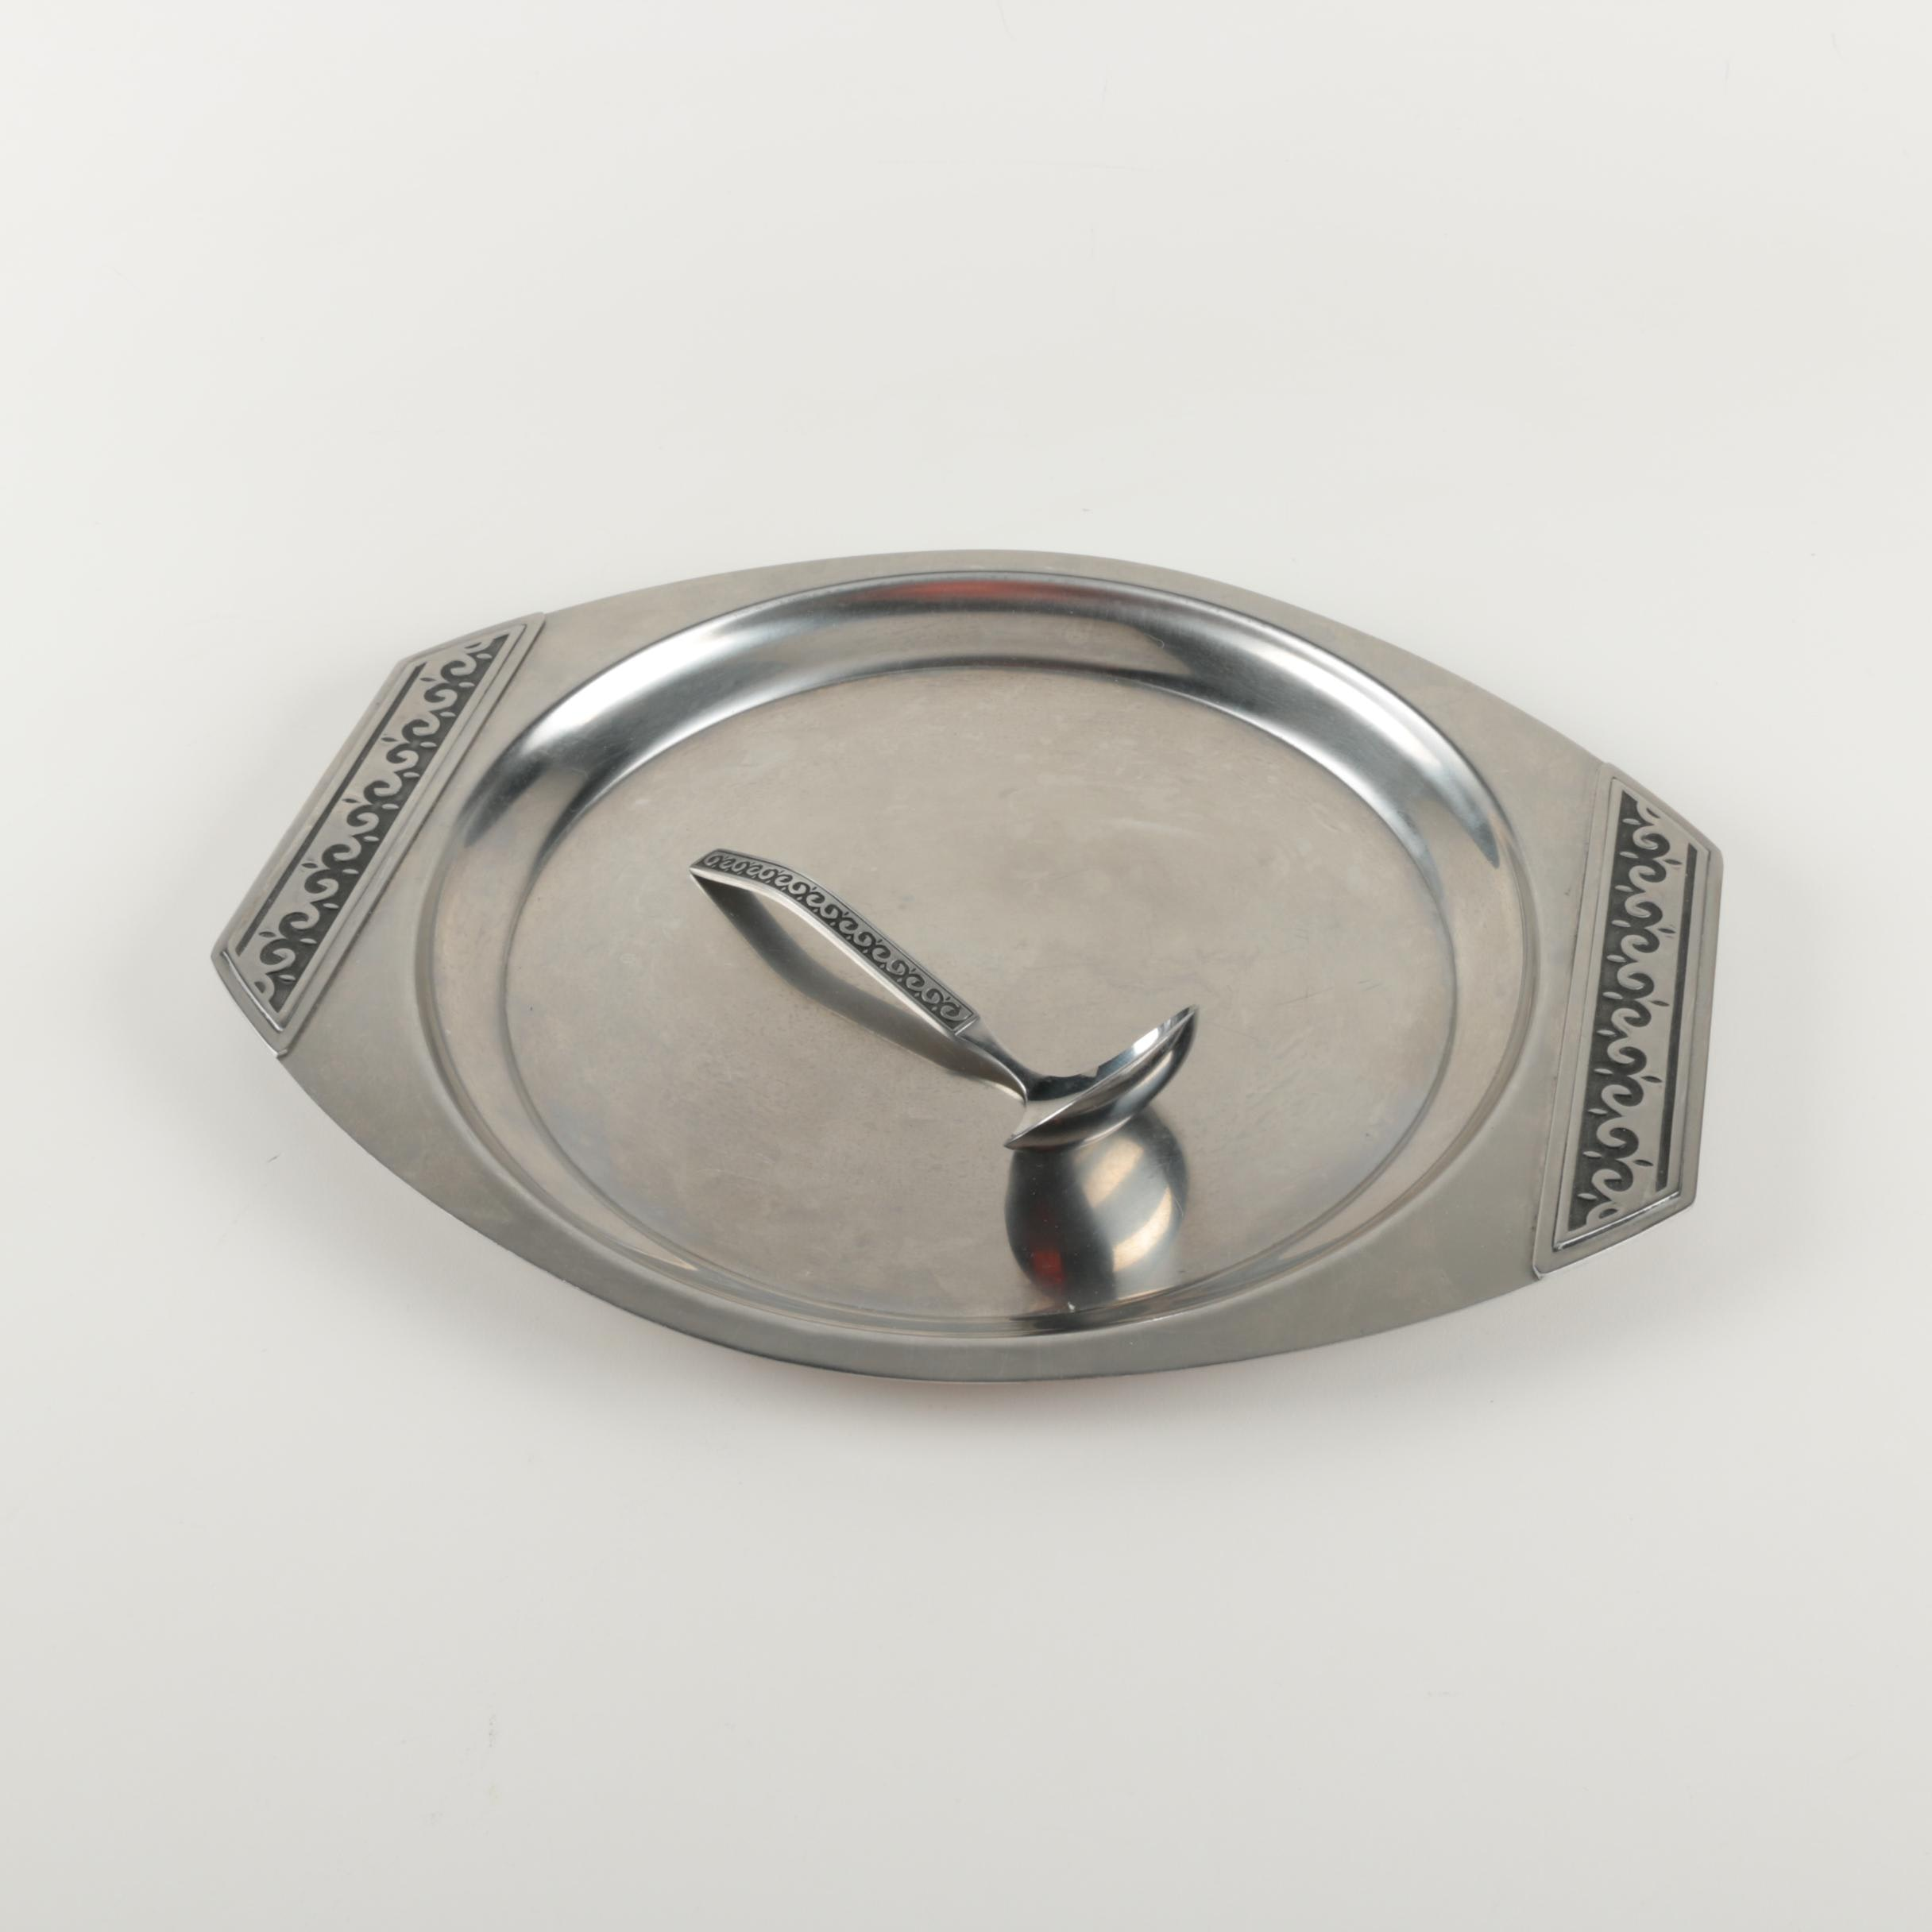 Stainless Steel Platter and Ladle